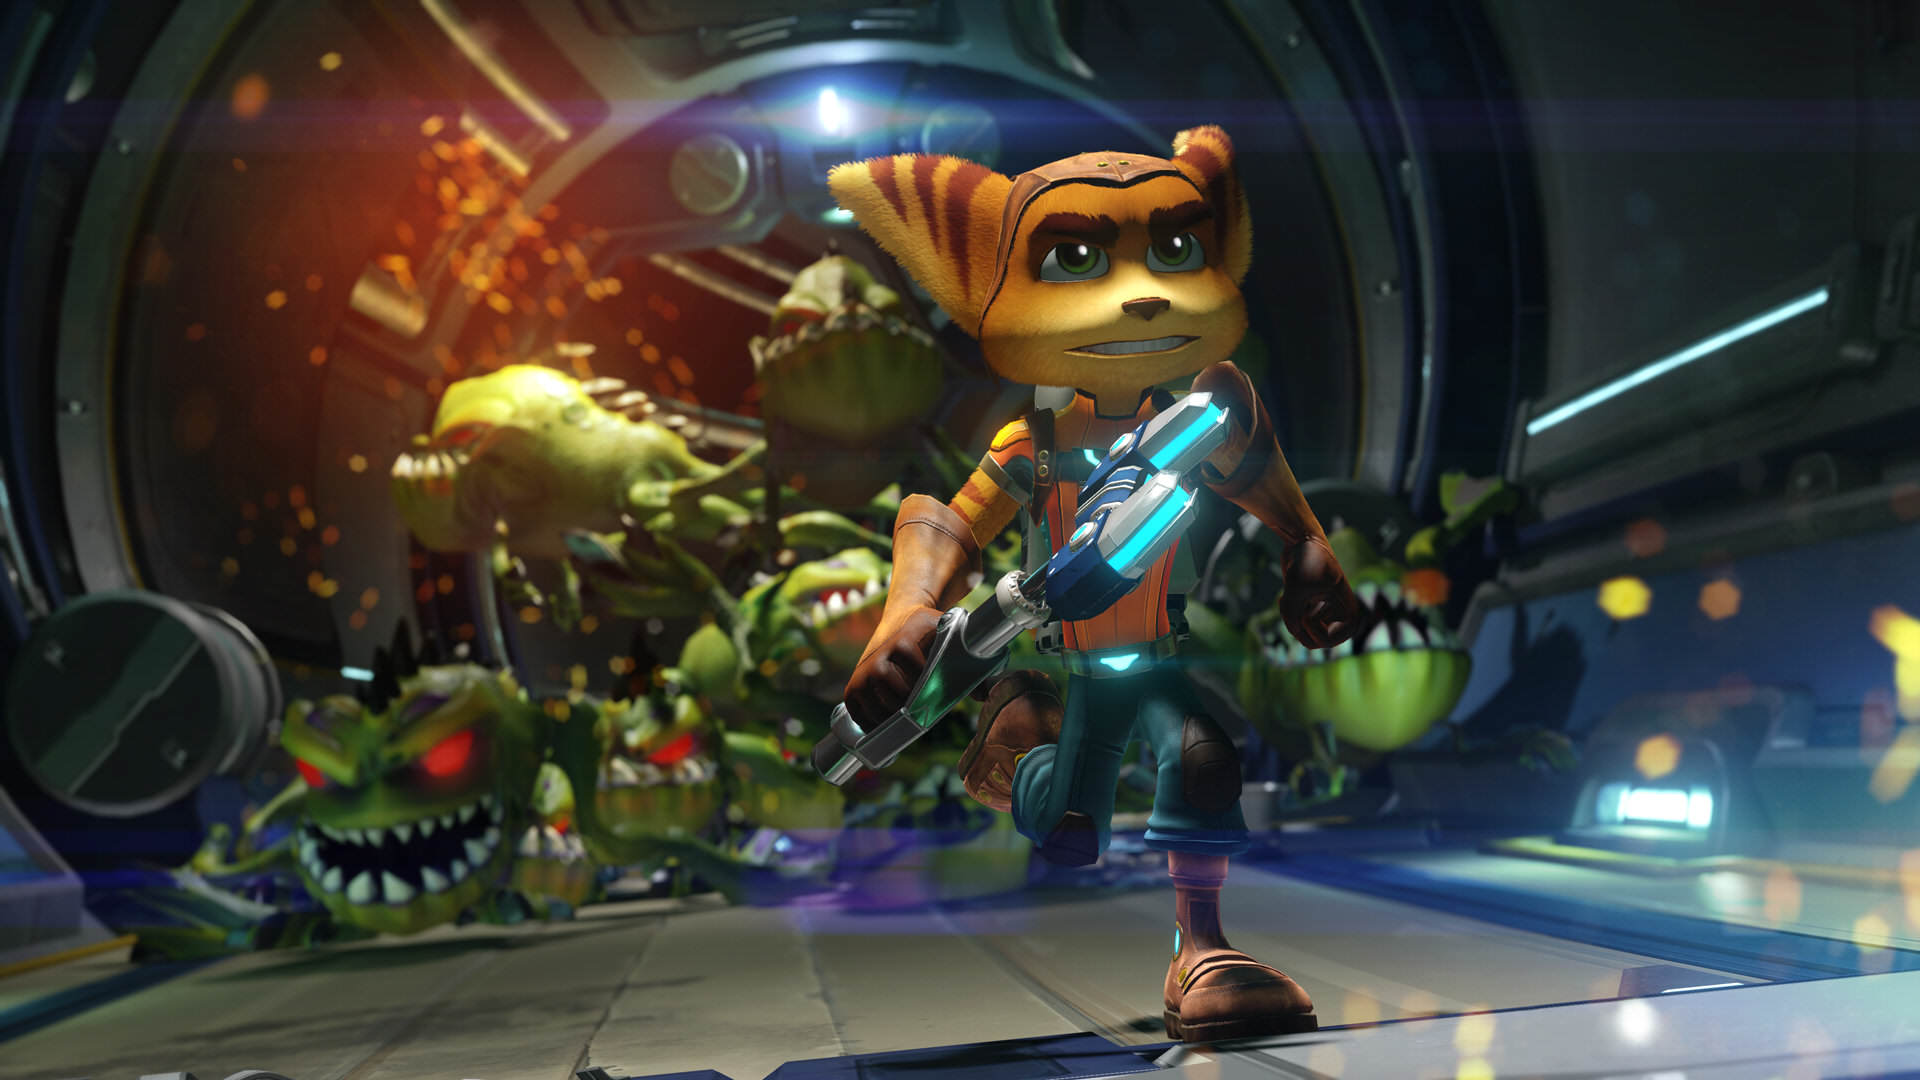 Ratchet & Clank Gets Last Minute Patch To Block Spoilers 4623709 3716010598 ratchet and clank screen 05 ps4 eu 02jun15